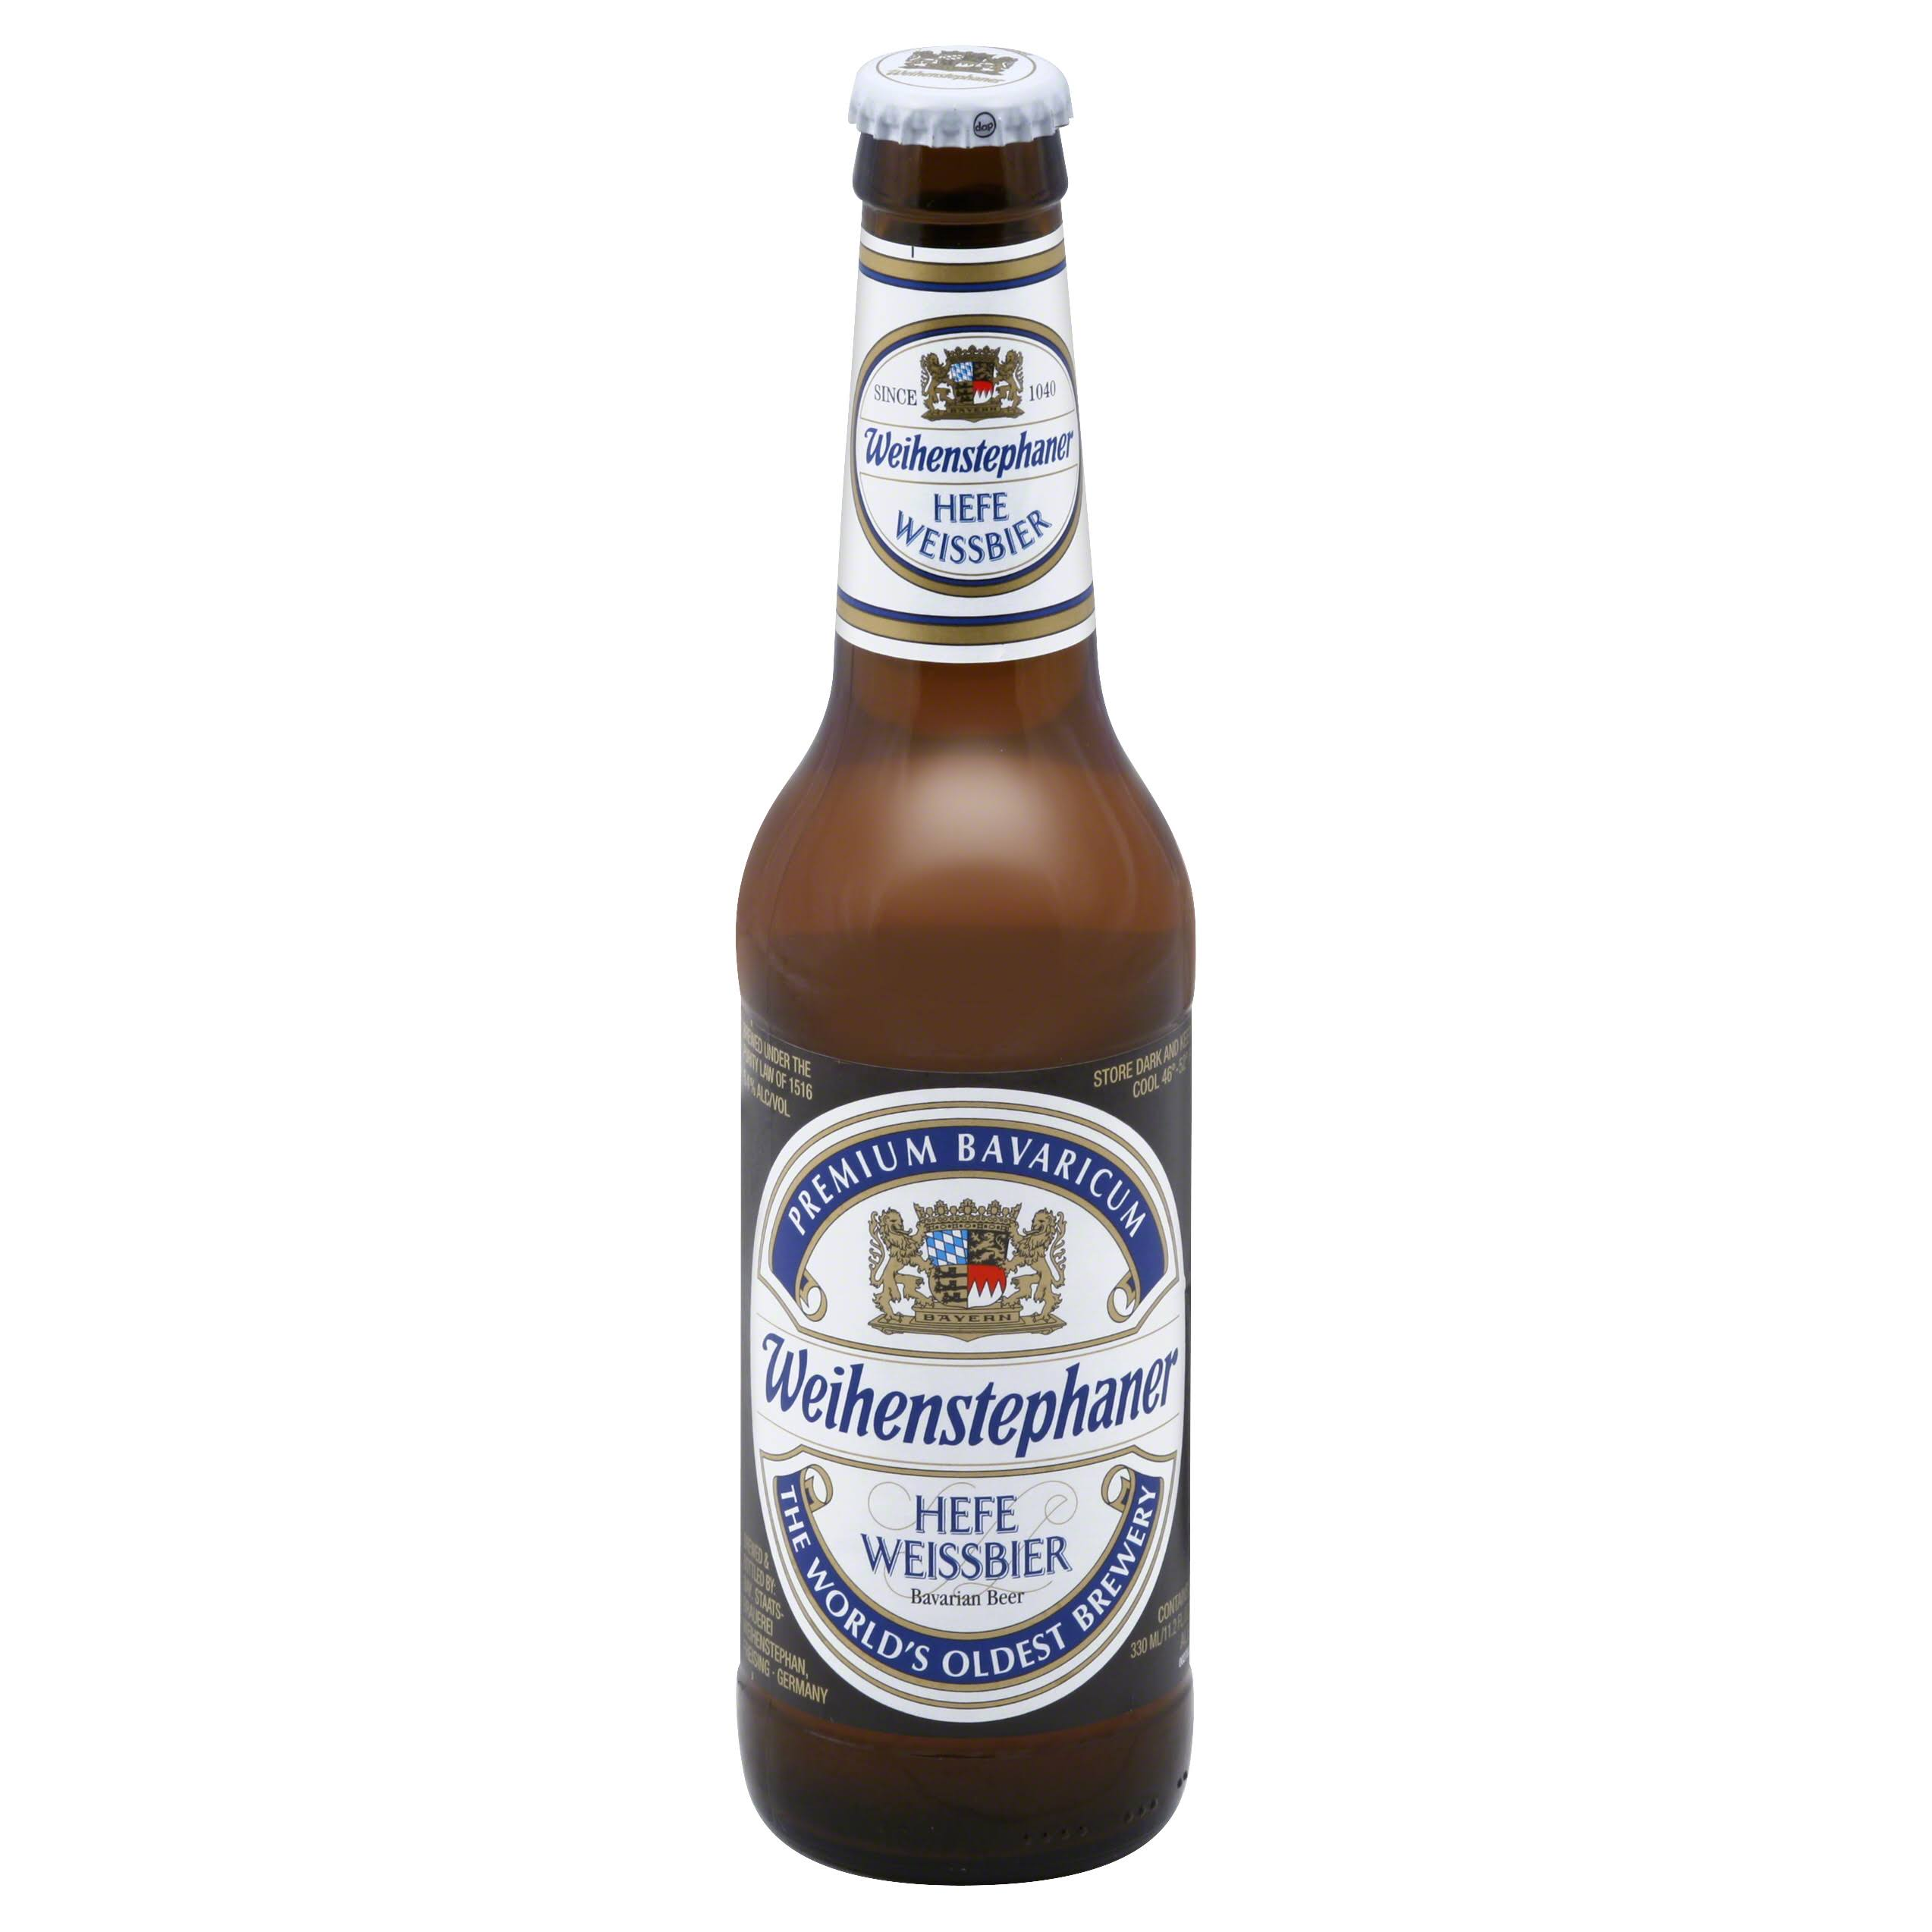 Weihenstephaner Hefe Weissbier Beer - 11.2 fl oz bottle